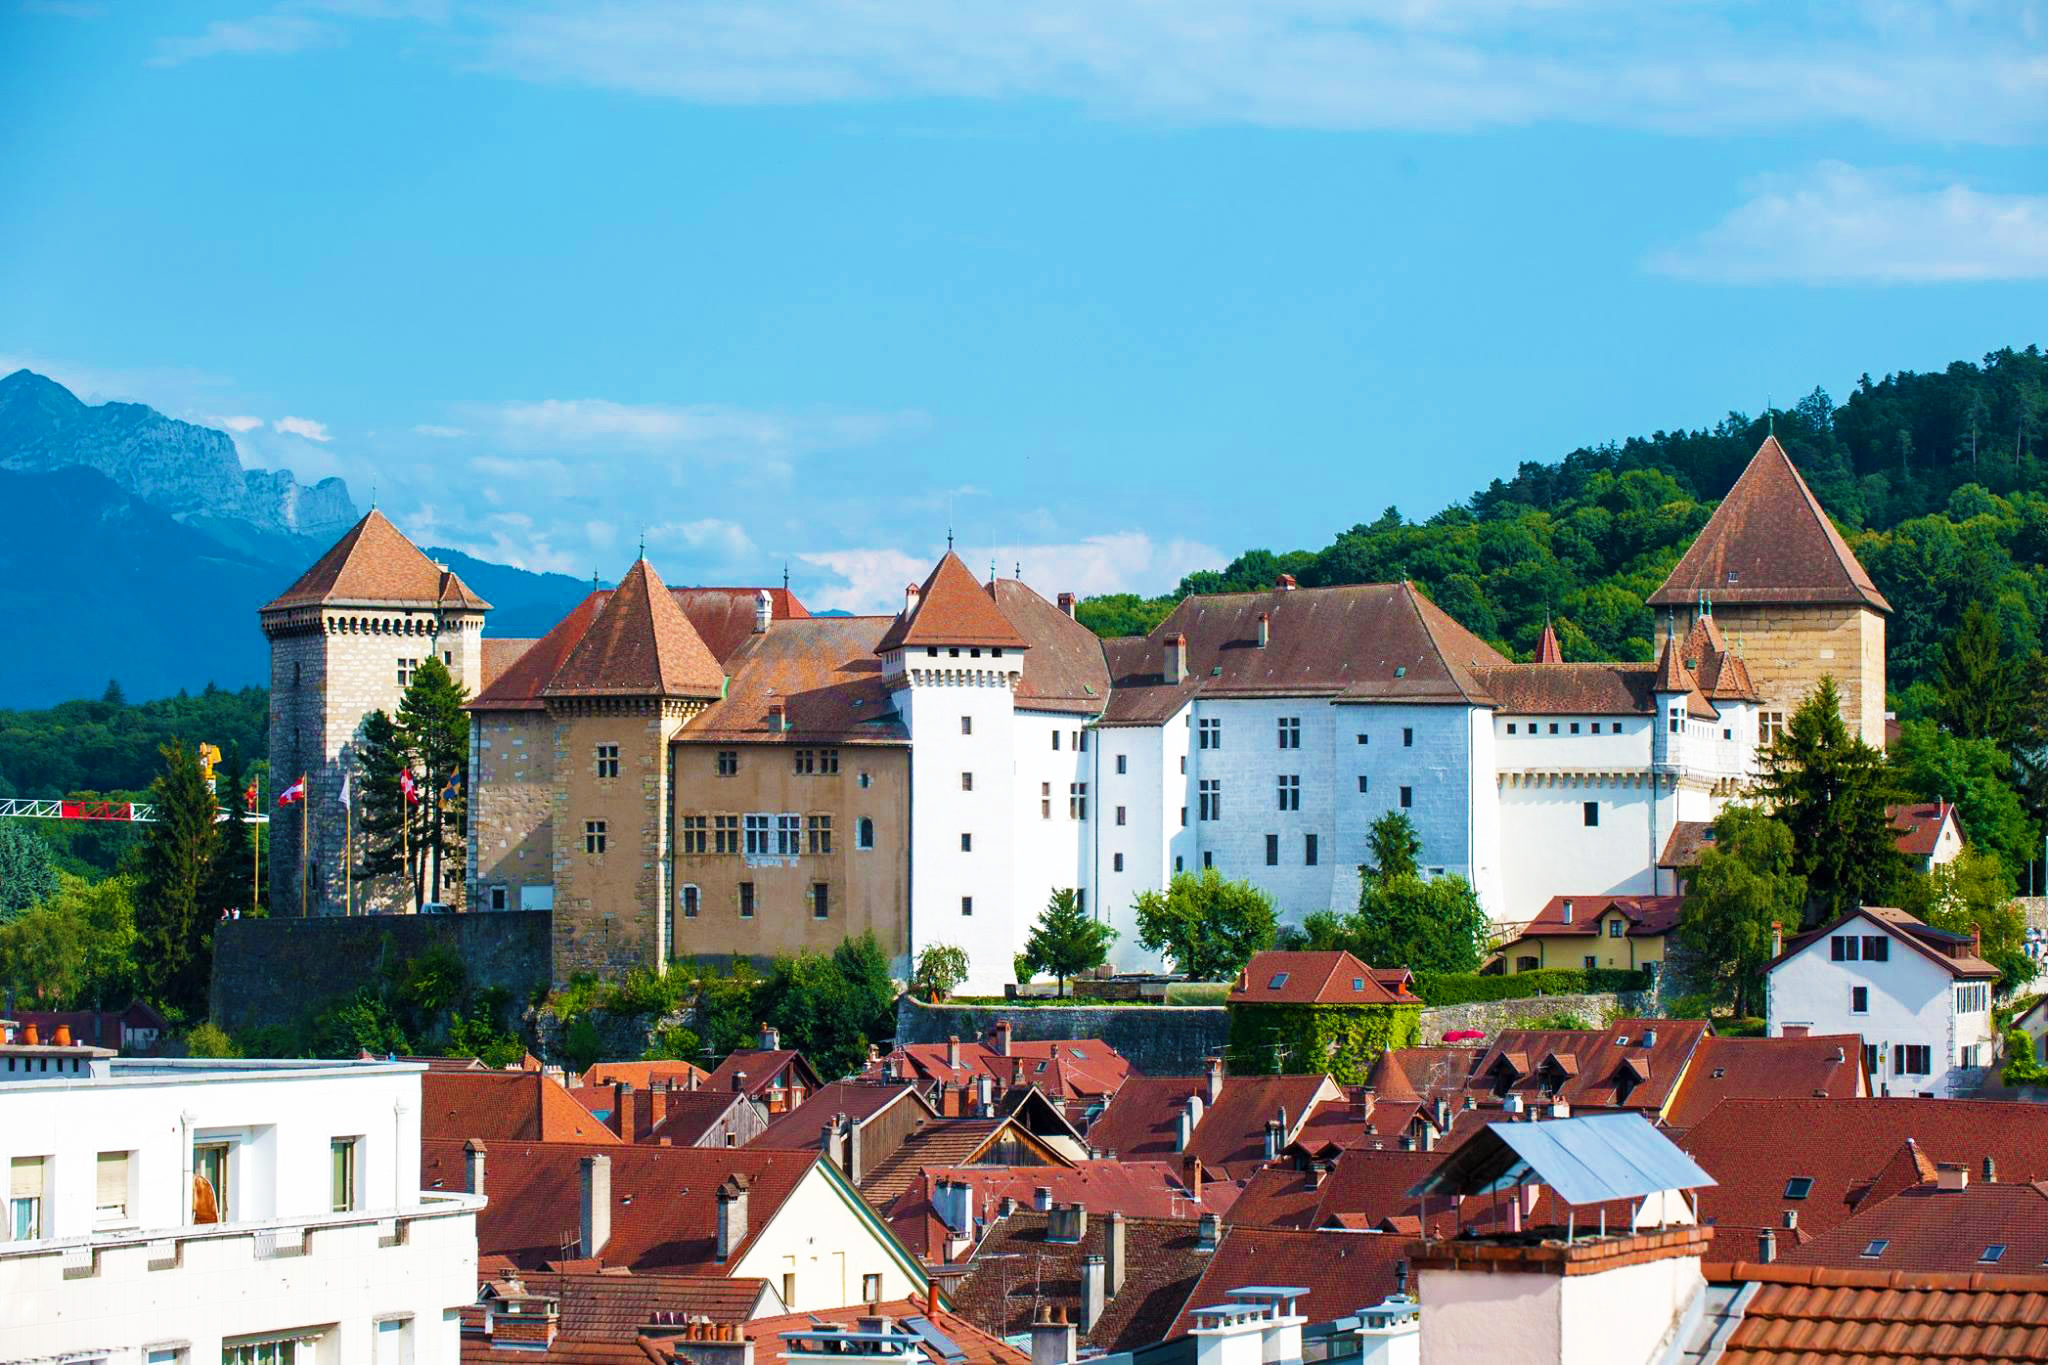 kt_2020_370_Keytours_excursions_Swisstours_annecy_château2_2048_10